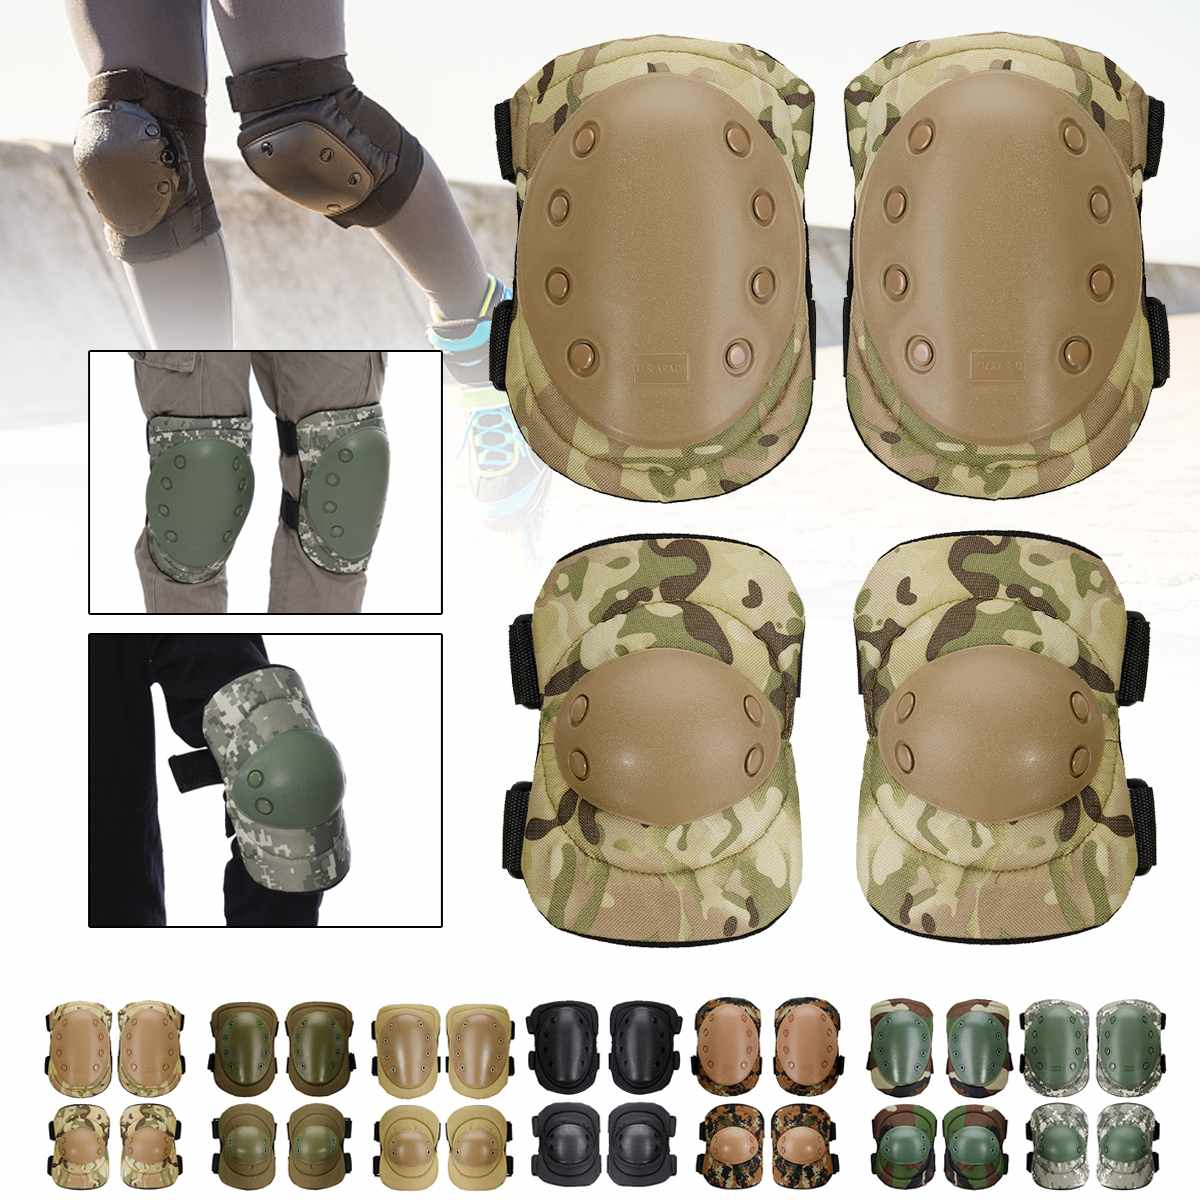 4Pcs/set Army Airsoft Tactical Knee Elbow Pads Set Gear Airsoft Hunting Protection Game Shooting Protective Pads Set